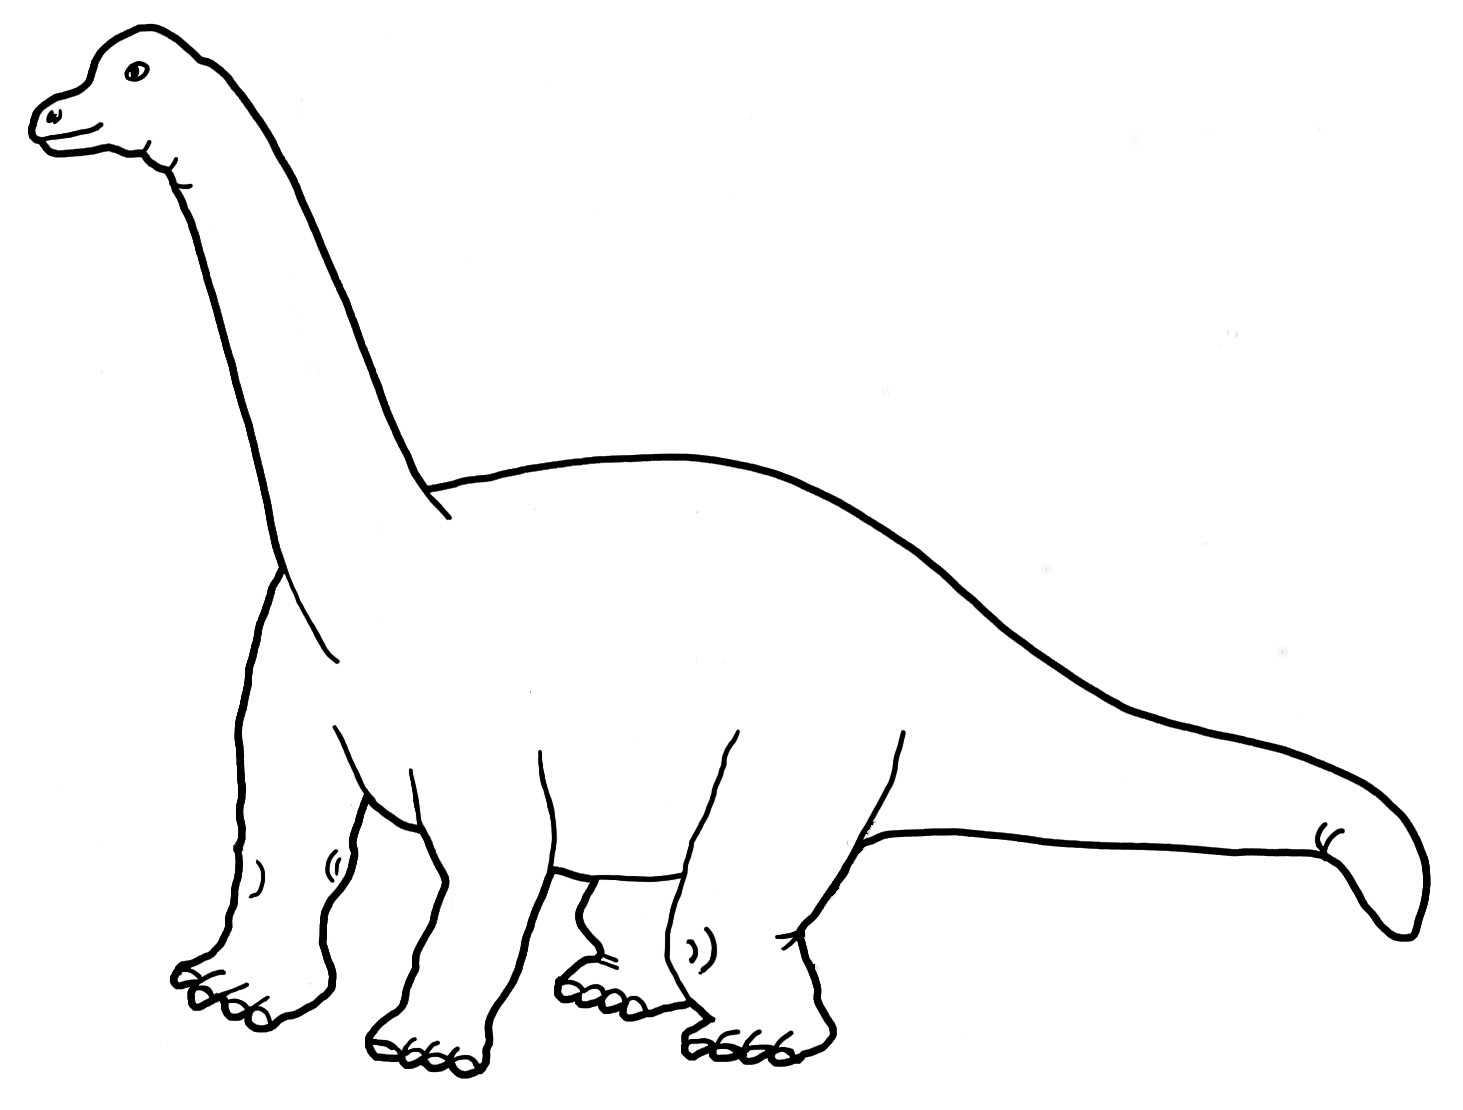 dinosaur print out coloring pages printable dinosaur coloring pages ankylosaurus for print coloring pages out dinosaur